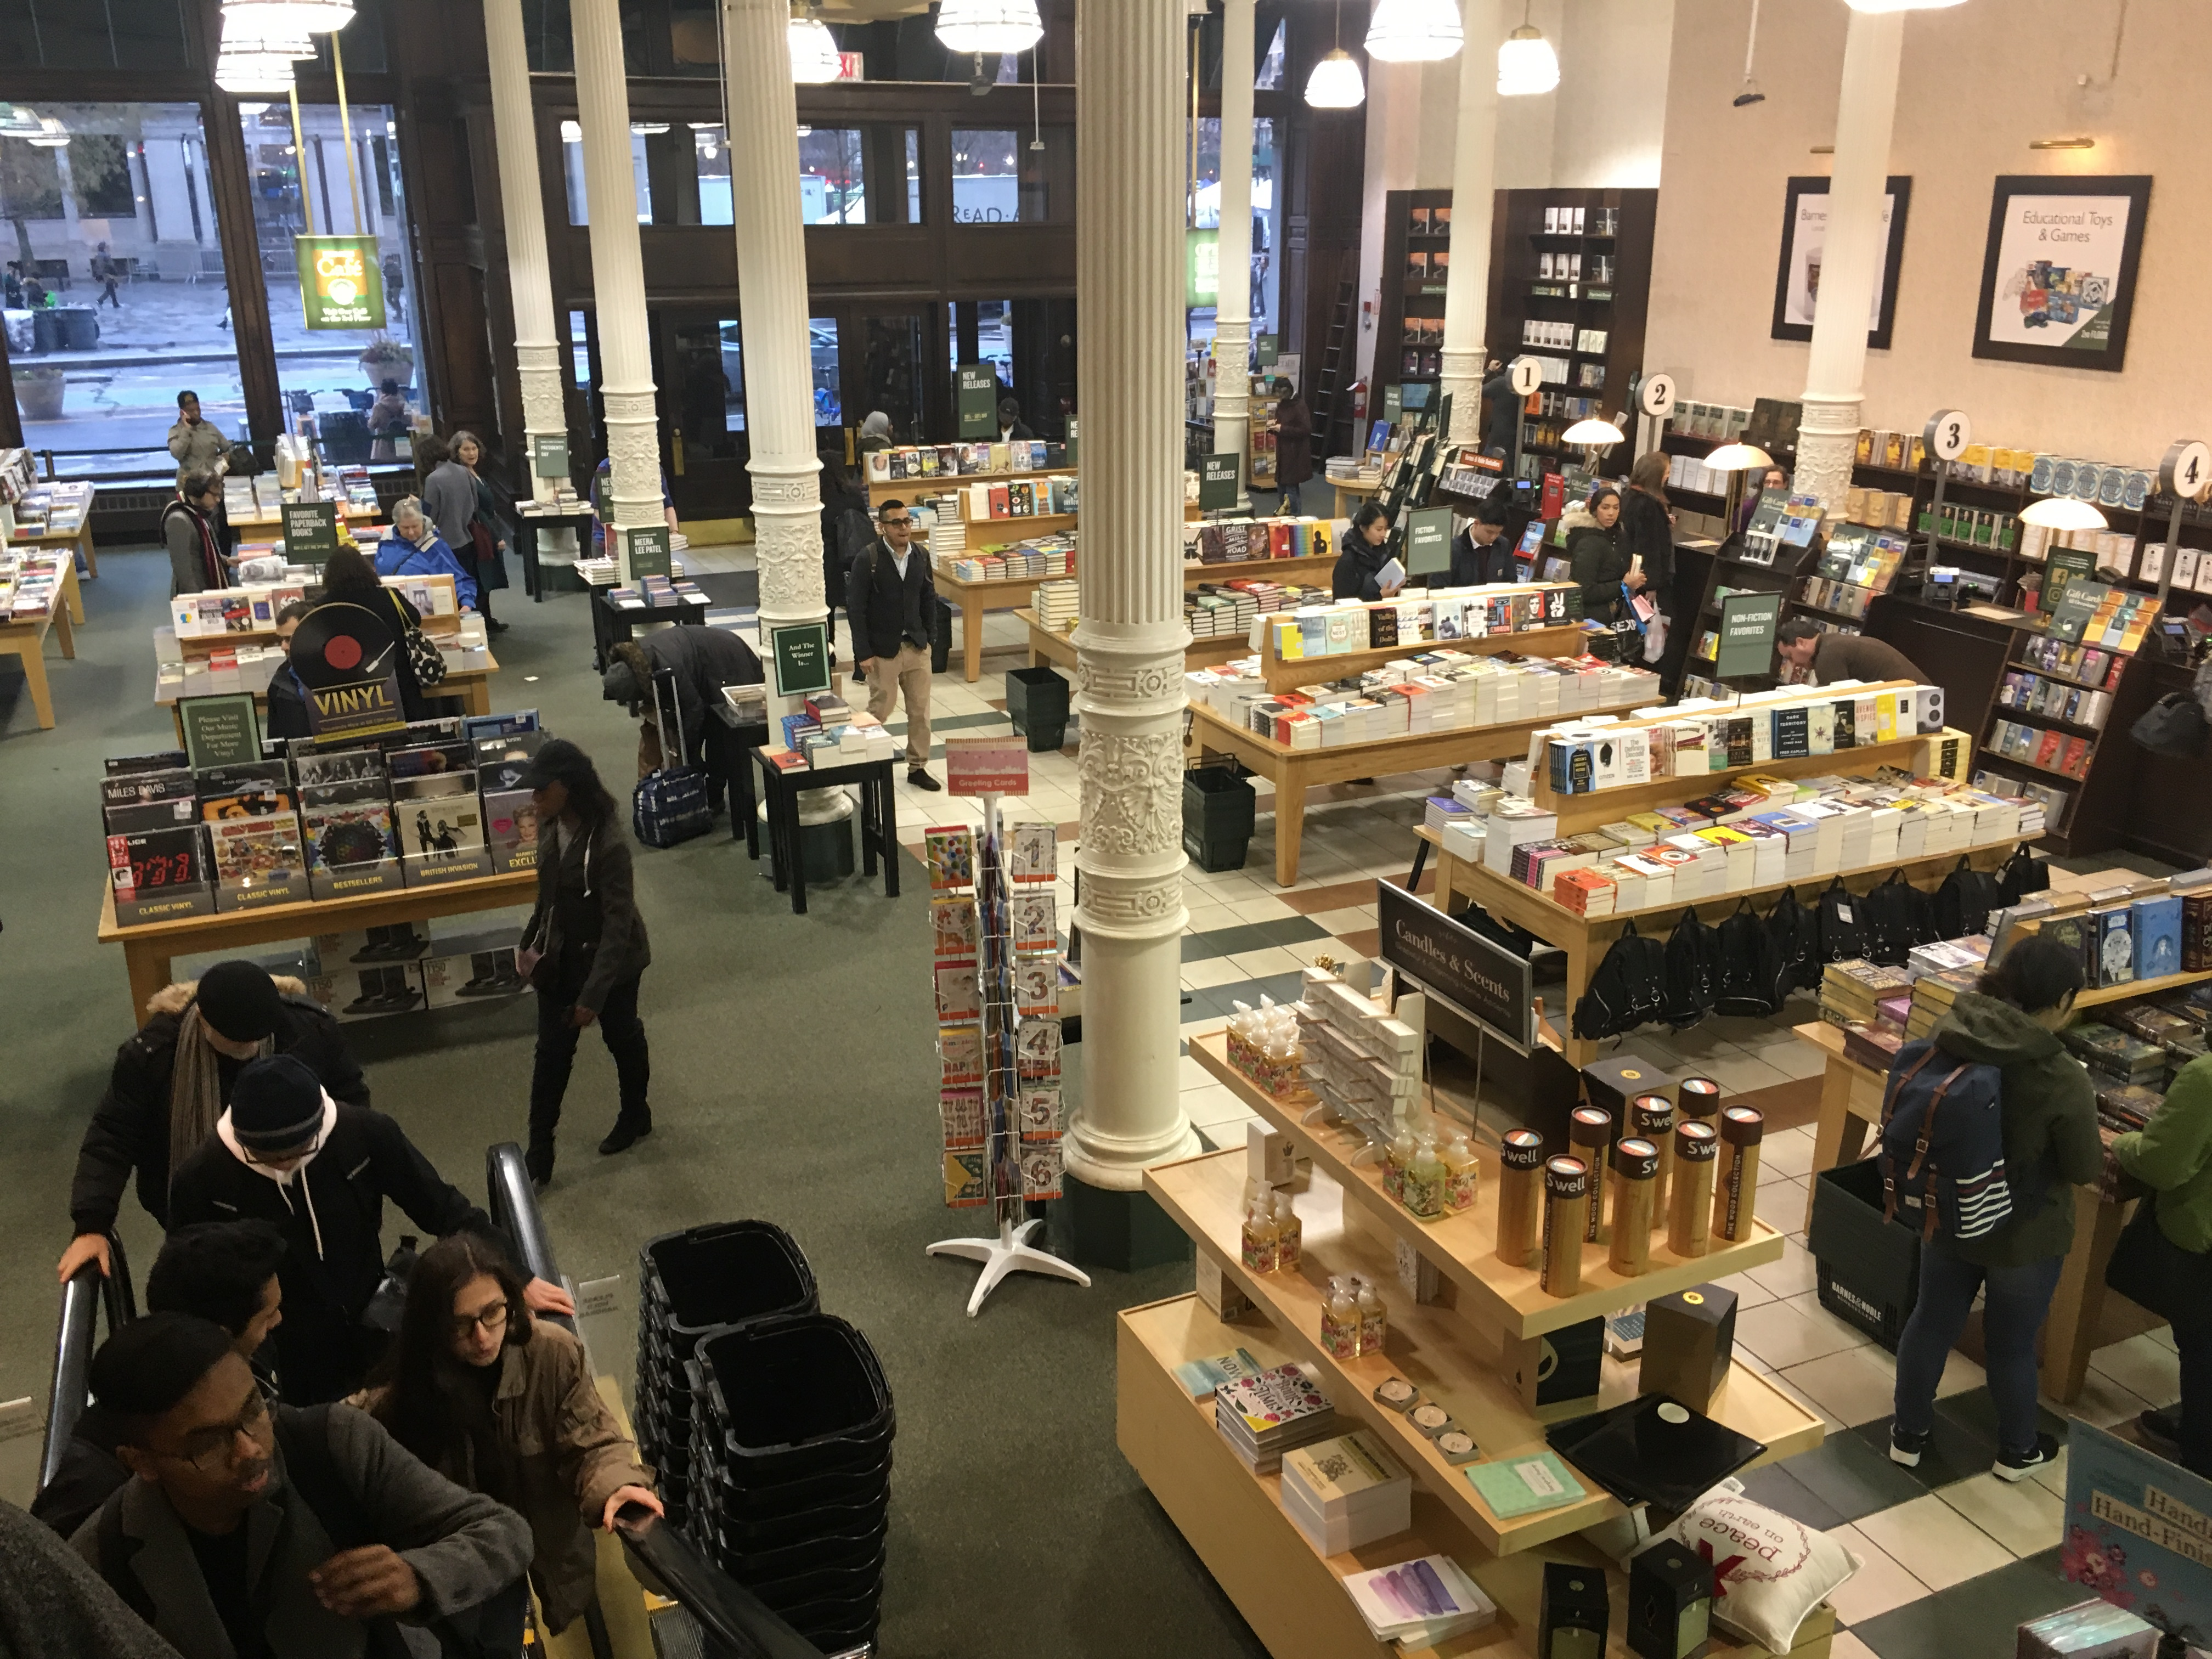 What is Barnes and Nobles?